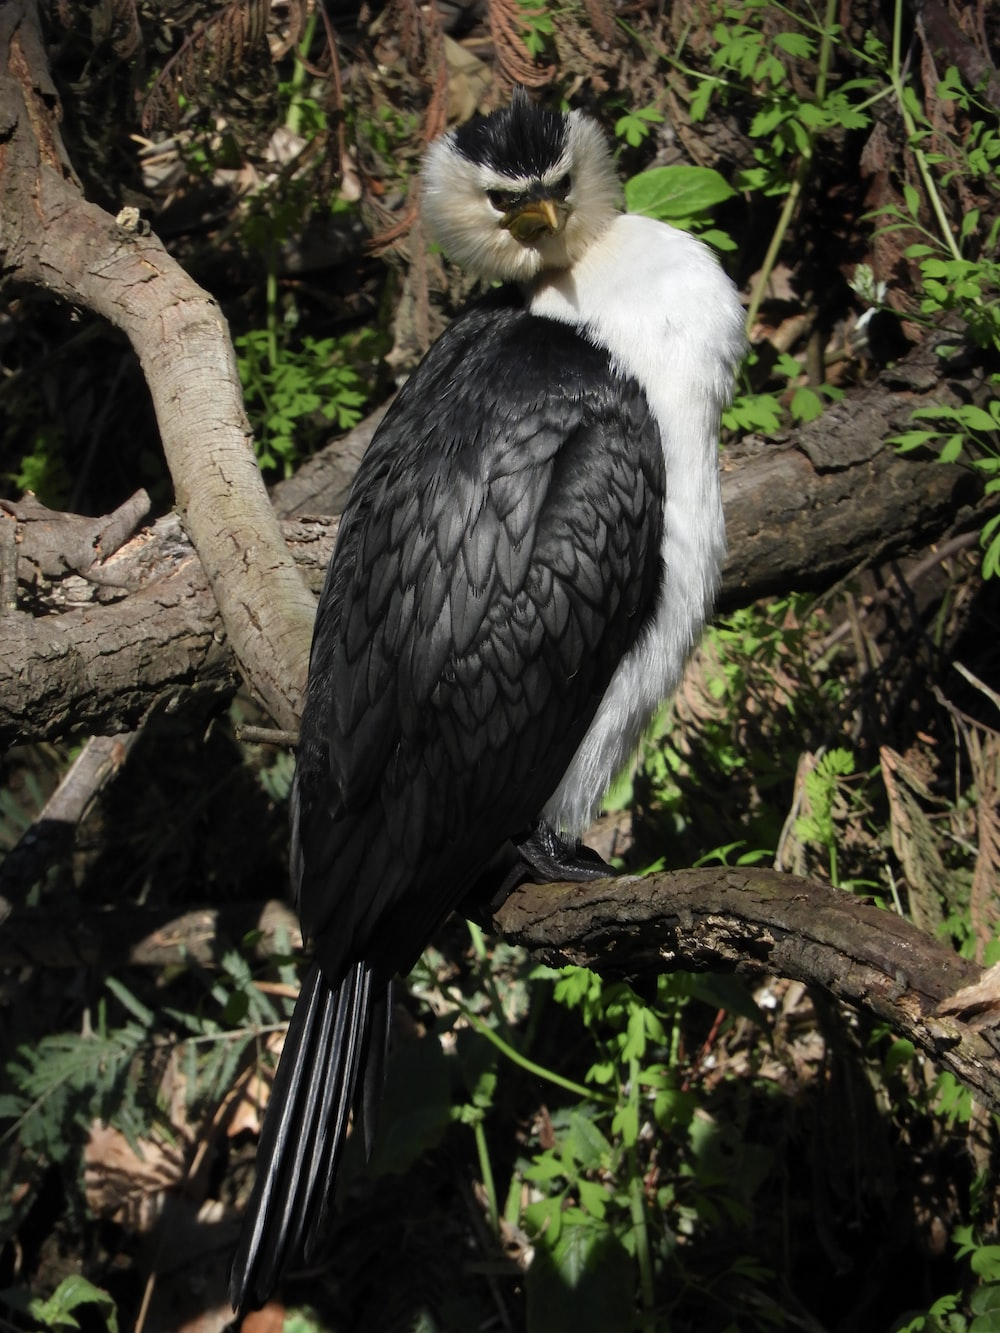 black and white eagle on branch of tree